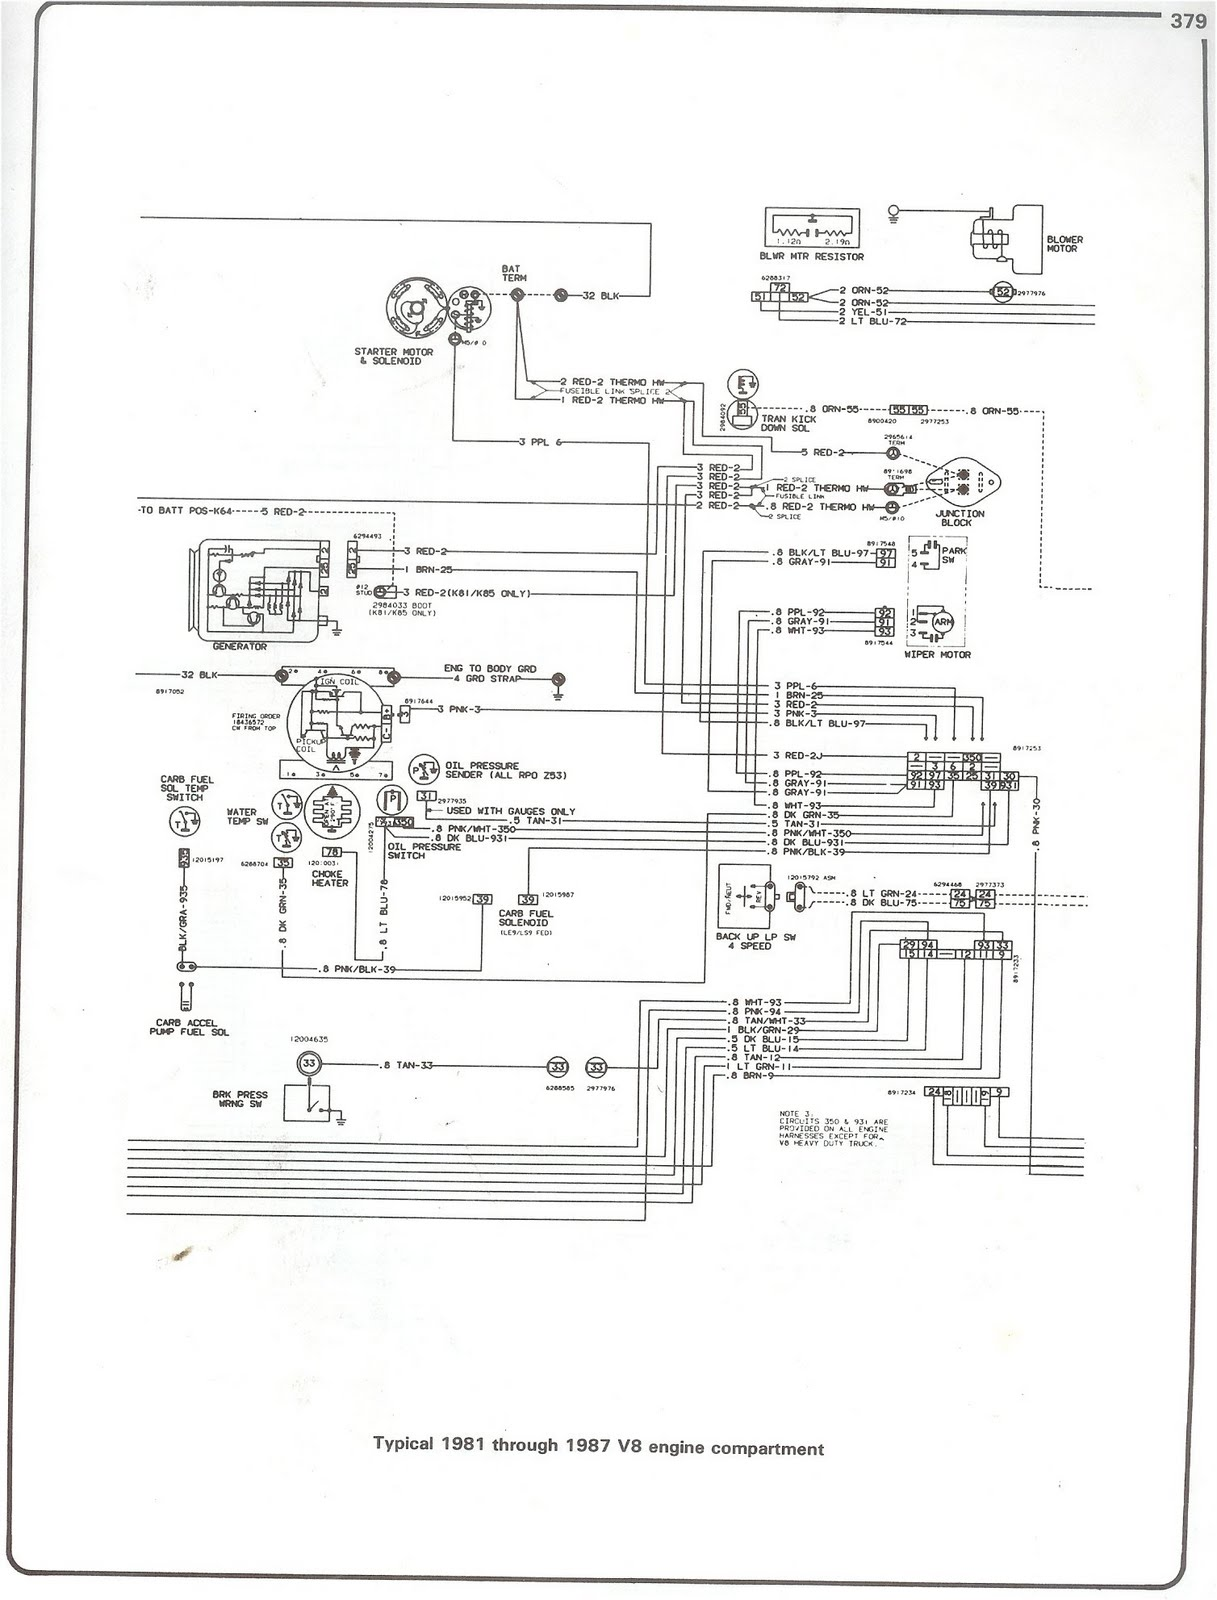 Mini Cooper Wiring Diagram 04 Data Diagrams For An Am Radio Block And Schematic Free Auto 1981 1987 Chevrolet V8 Truck 2010 05